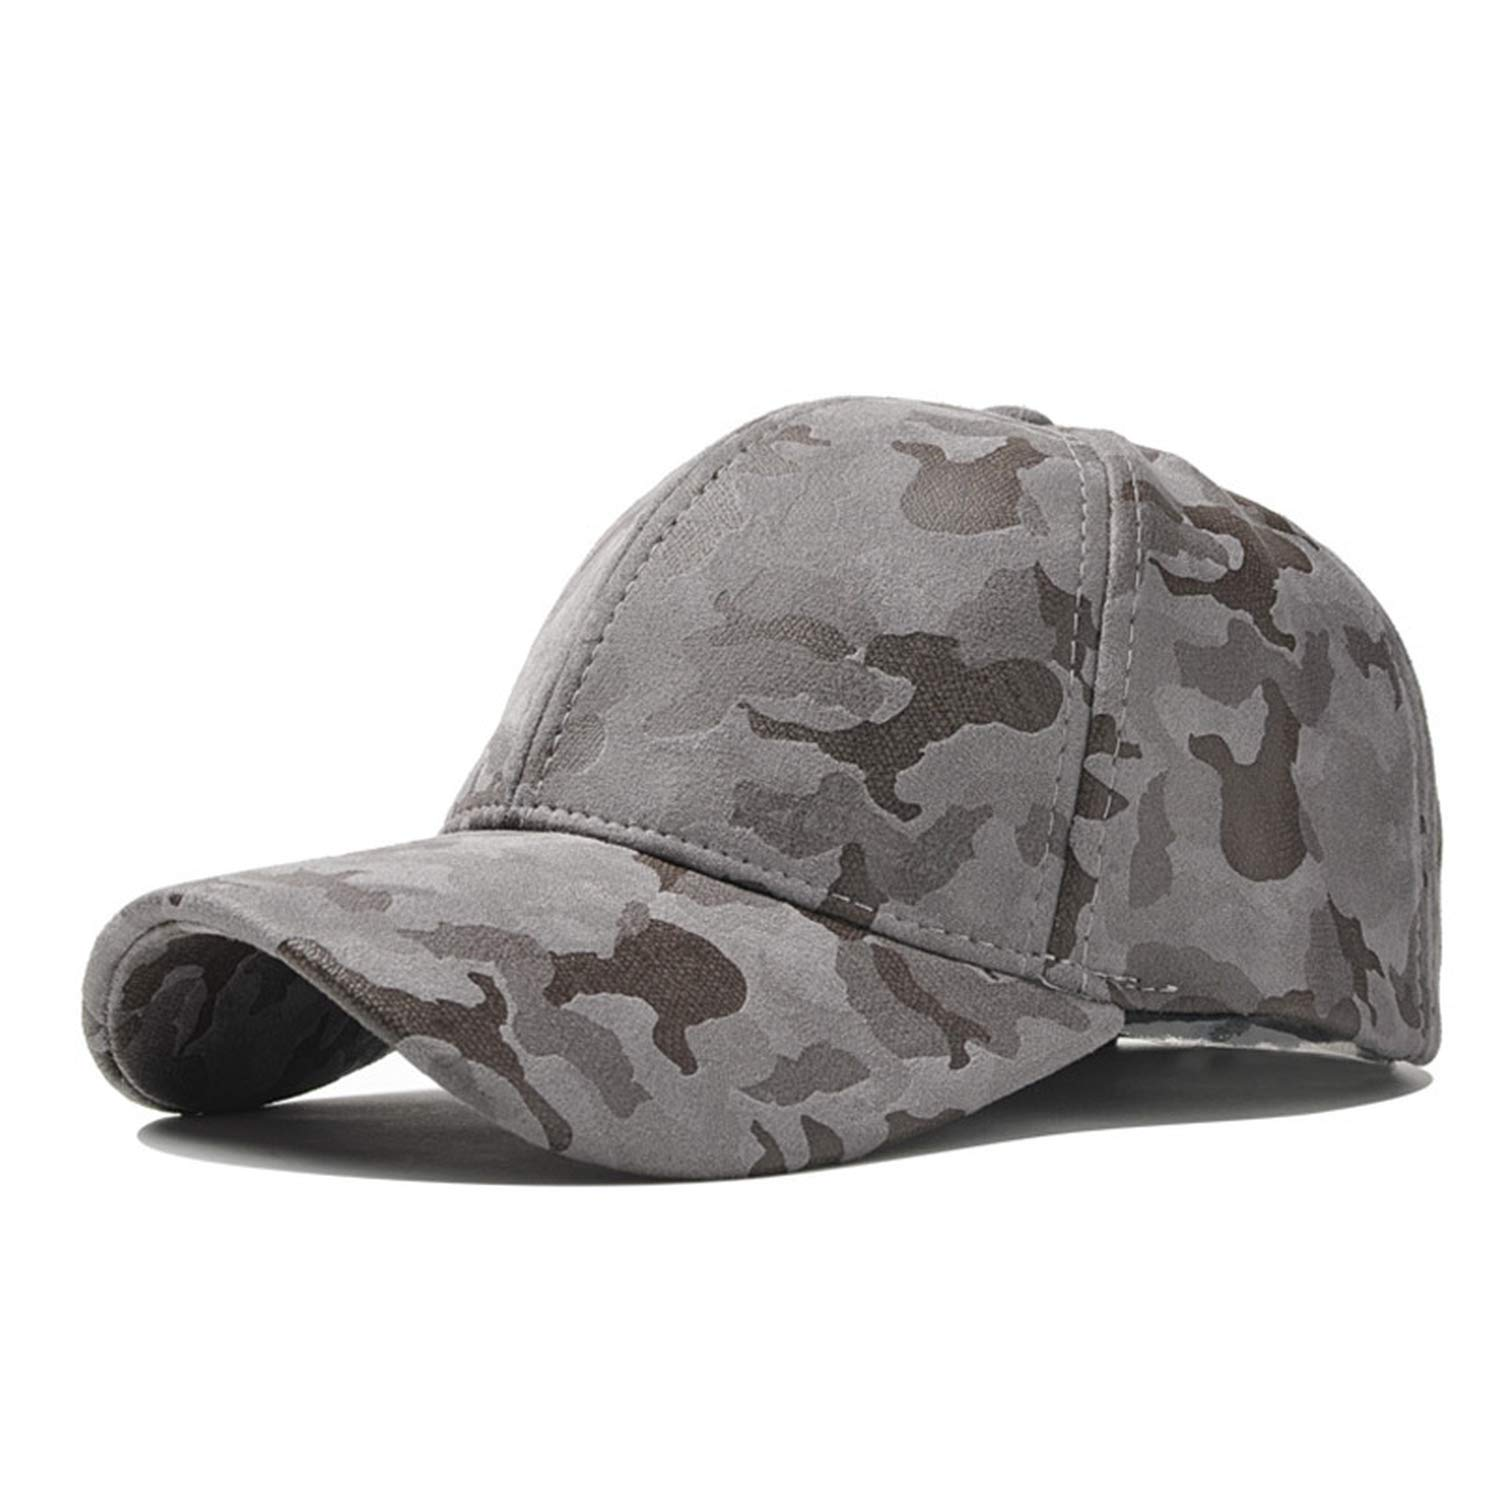 Xivikow 2019 New Camouflage Baseball Cap Women Gorras for Hombre Hats Print Mens Cap Trucker Hat at Amazon Mens Clothing store: